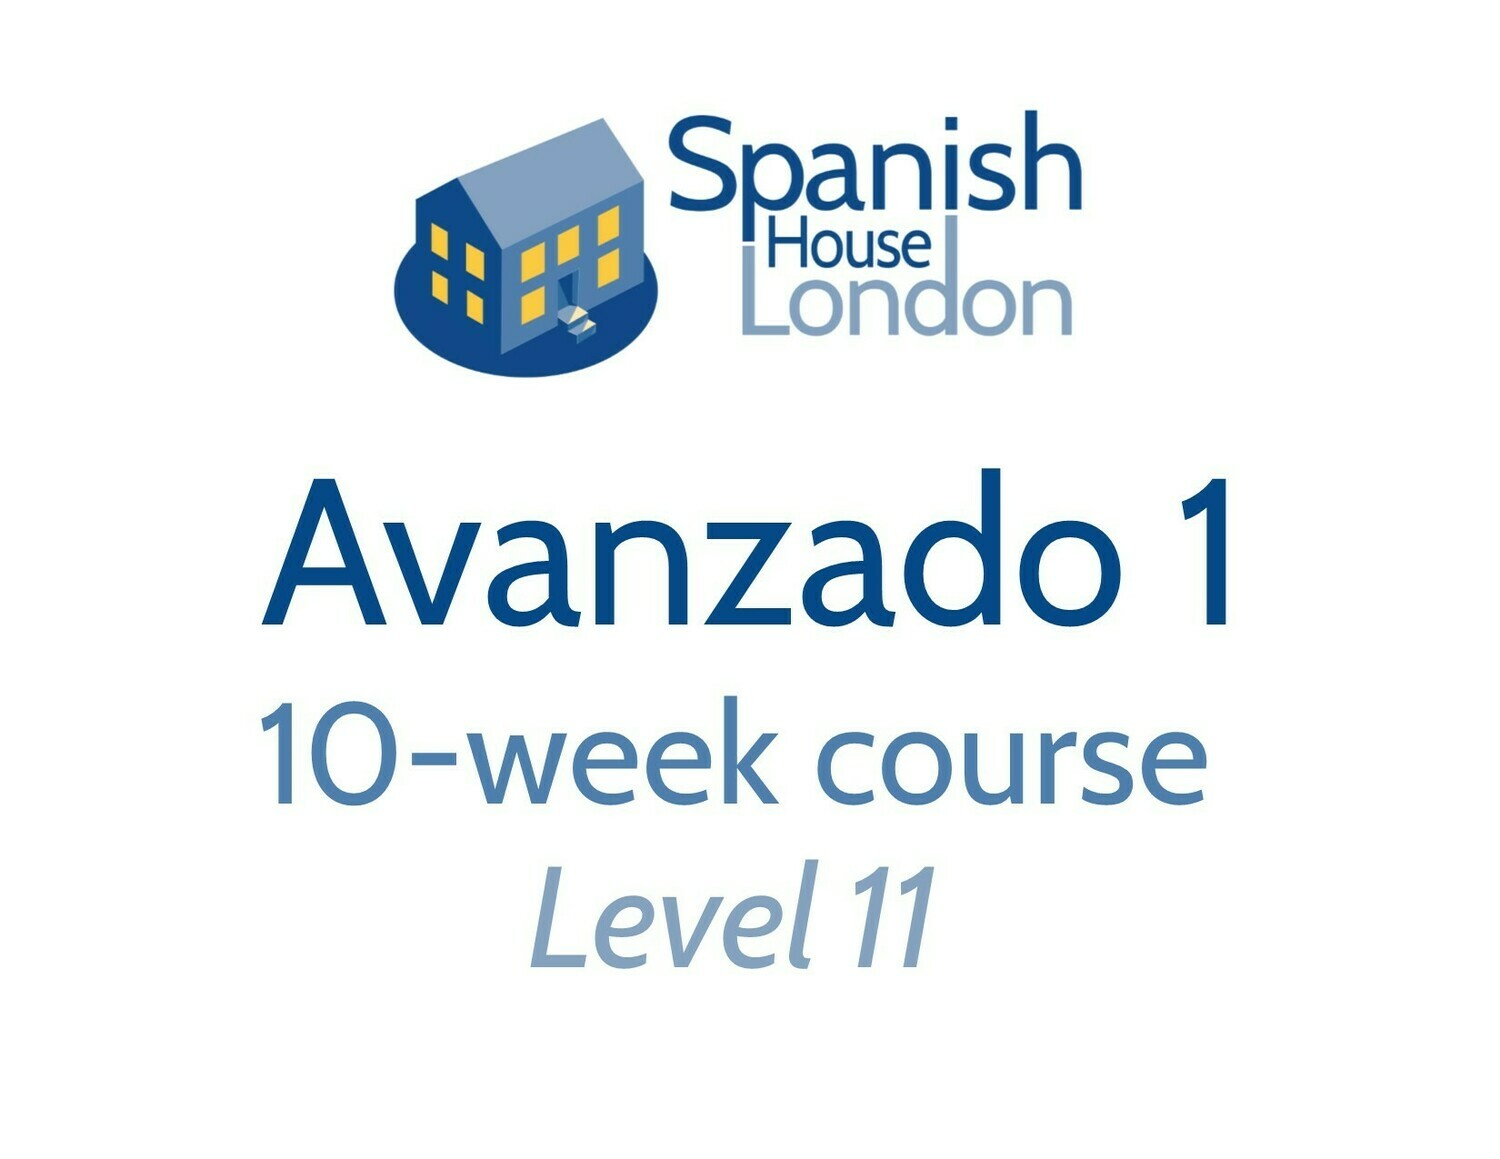 Avanzado 1 Course starting on 20th August at 6pm in Clapham North